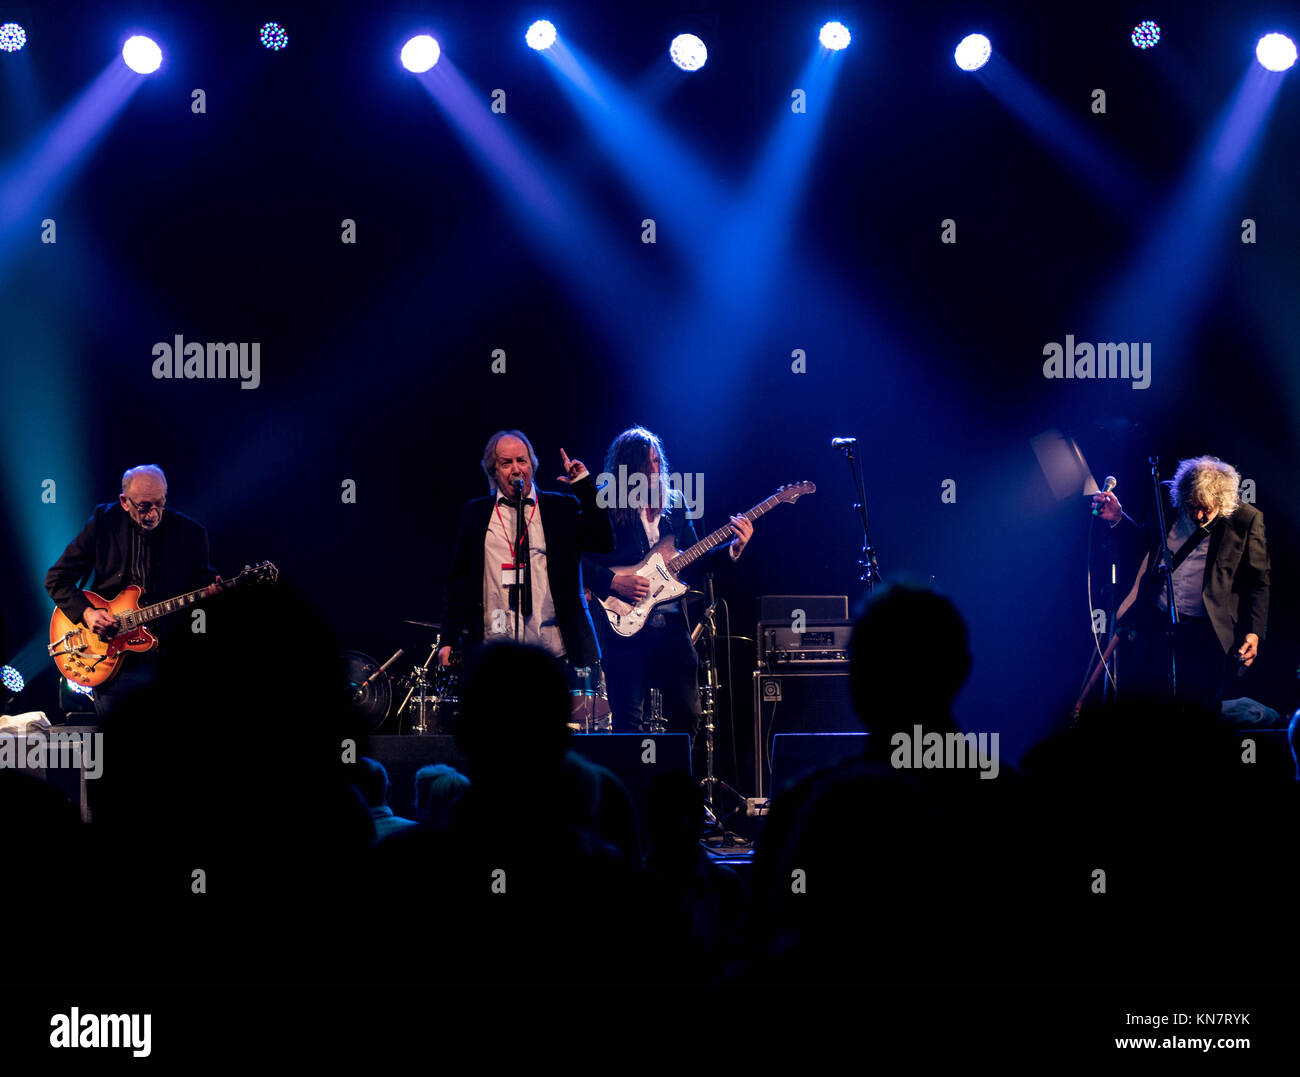 The pretty Things at the Edinburgh Blues 'N' Rock Festival in The Corn Exchange Edinburgh 2017 - Stock Image